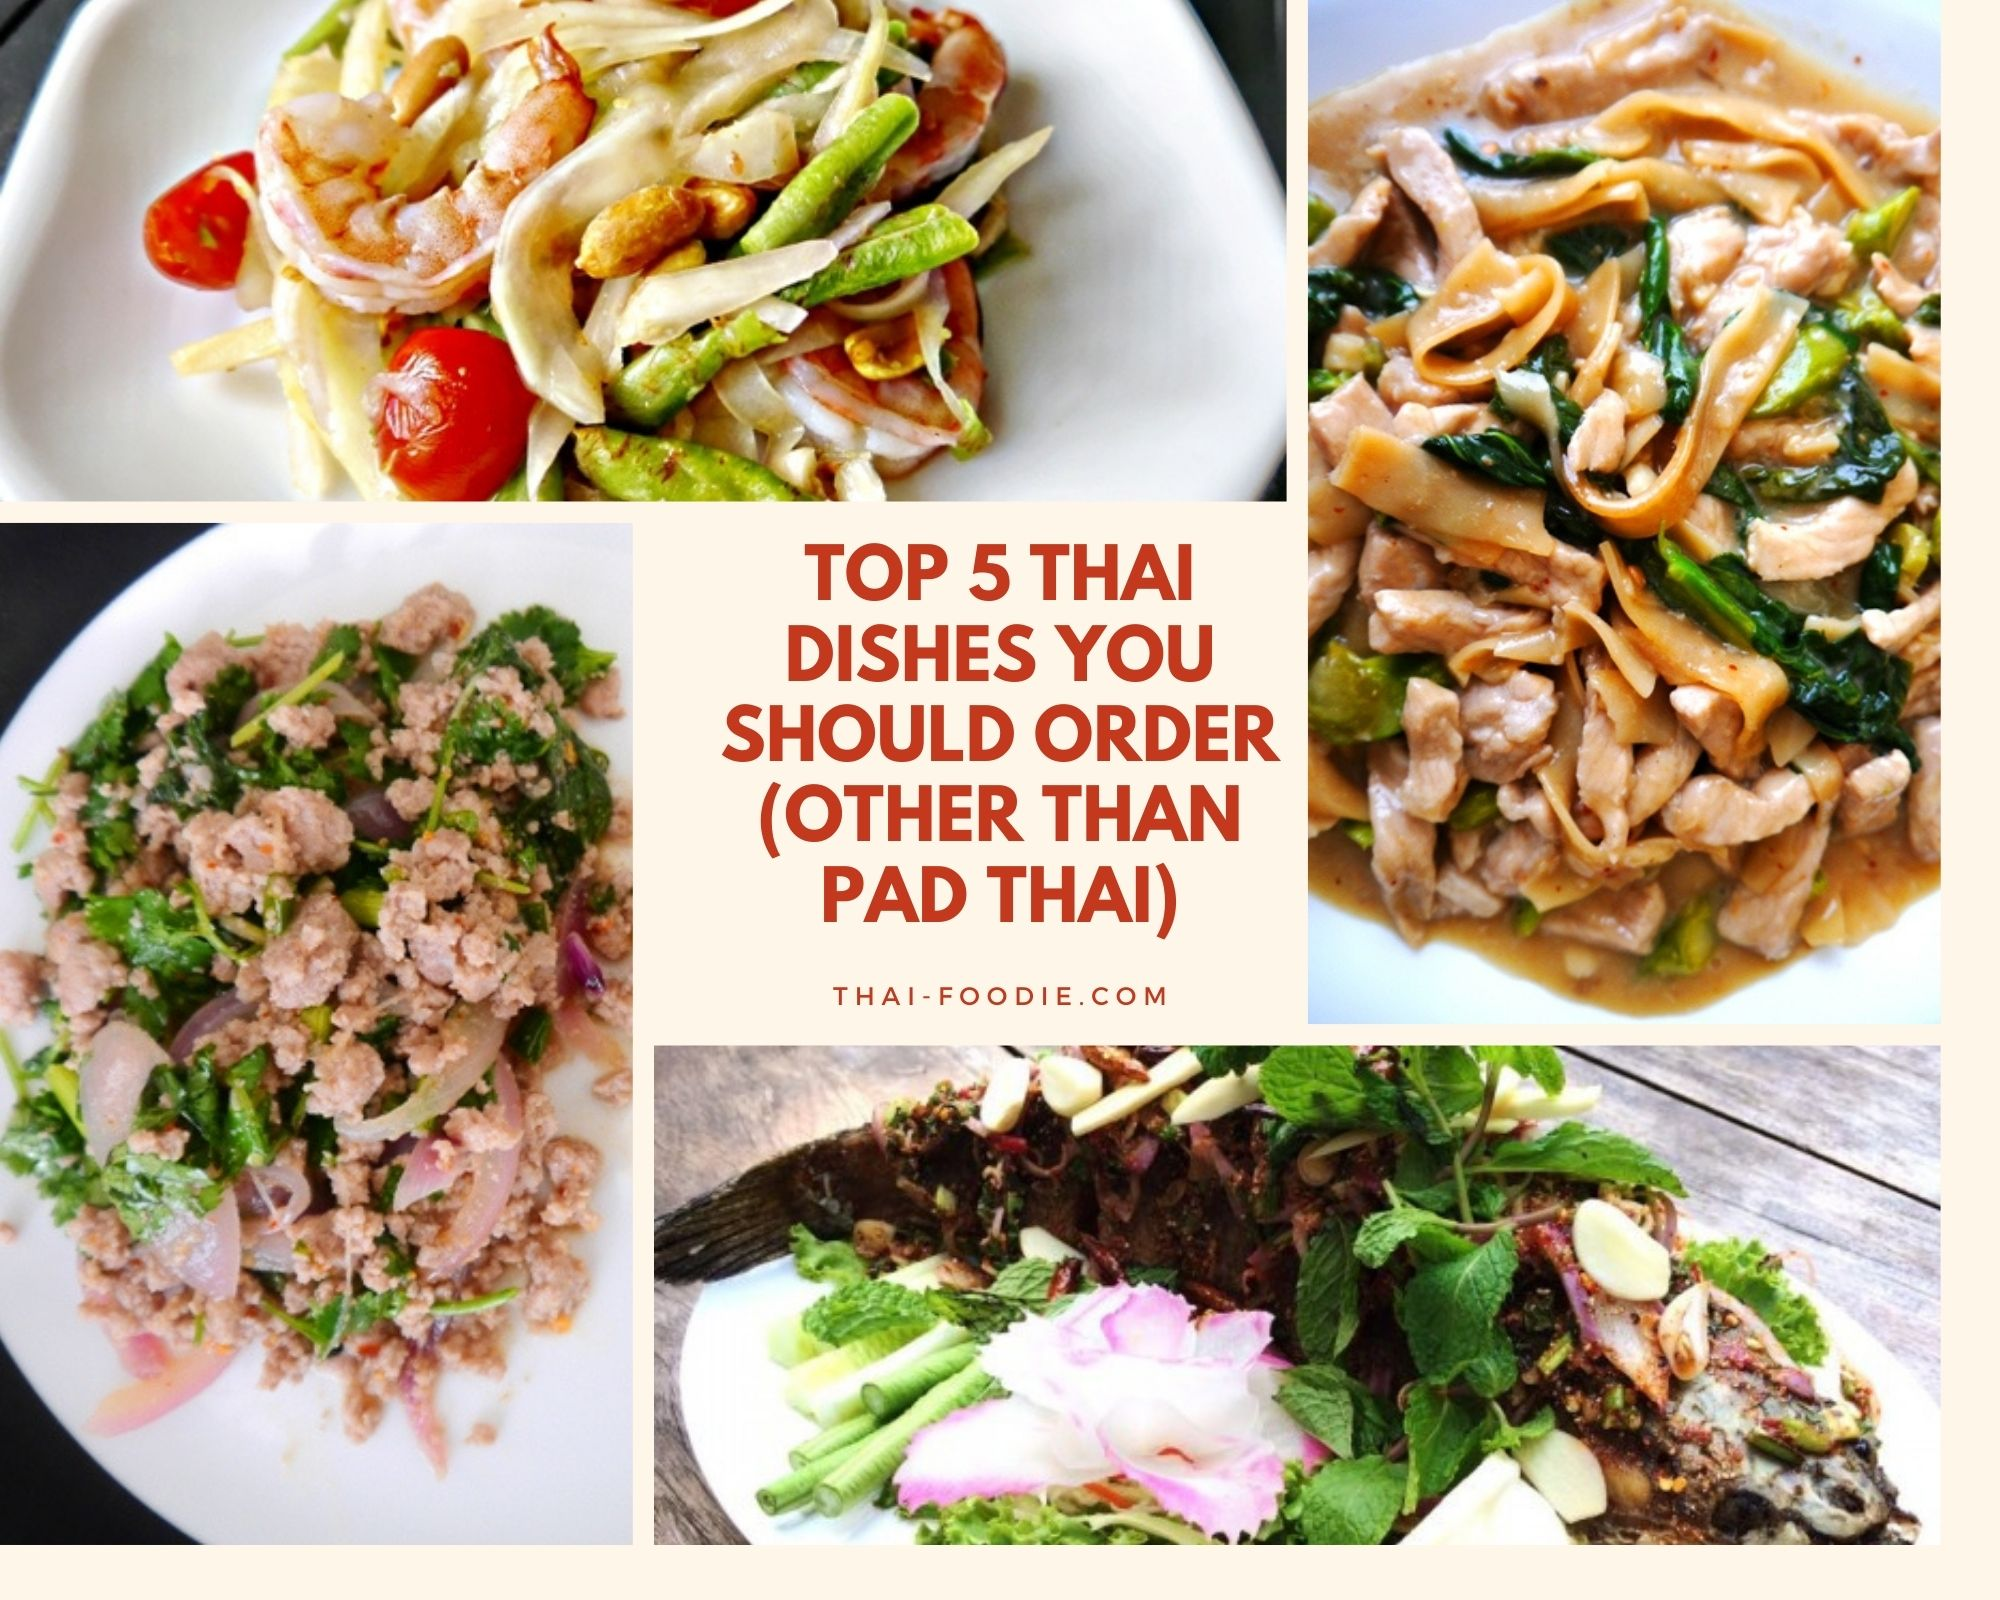 Top 5 Thai Dishes You Should Order | thai-foodie.com